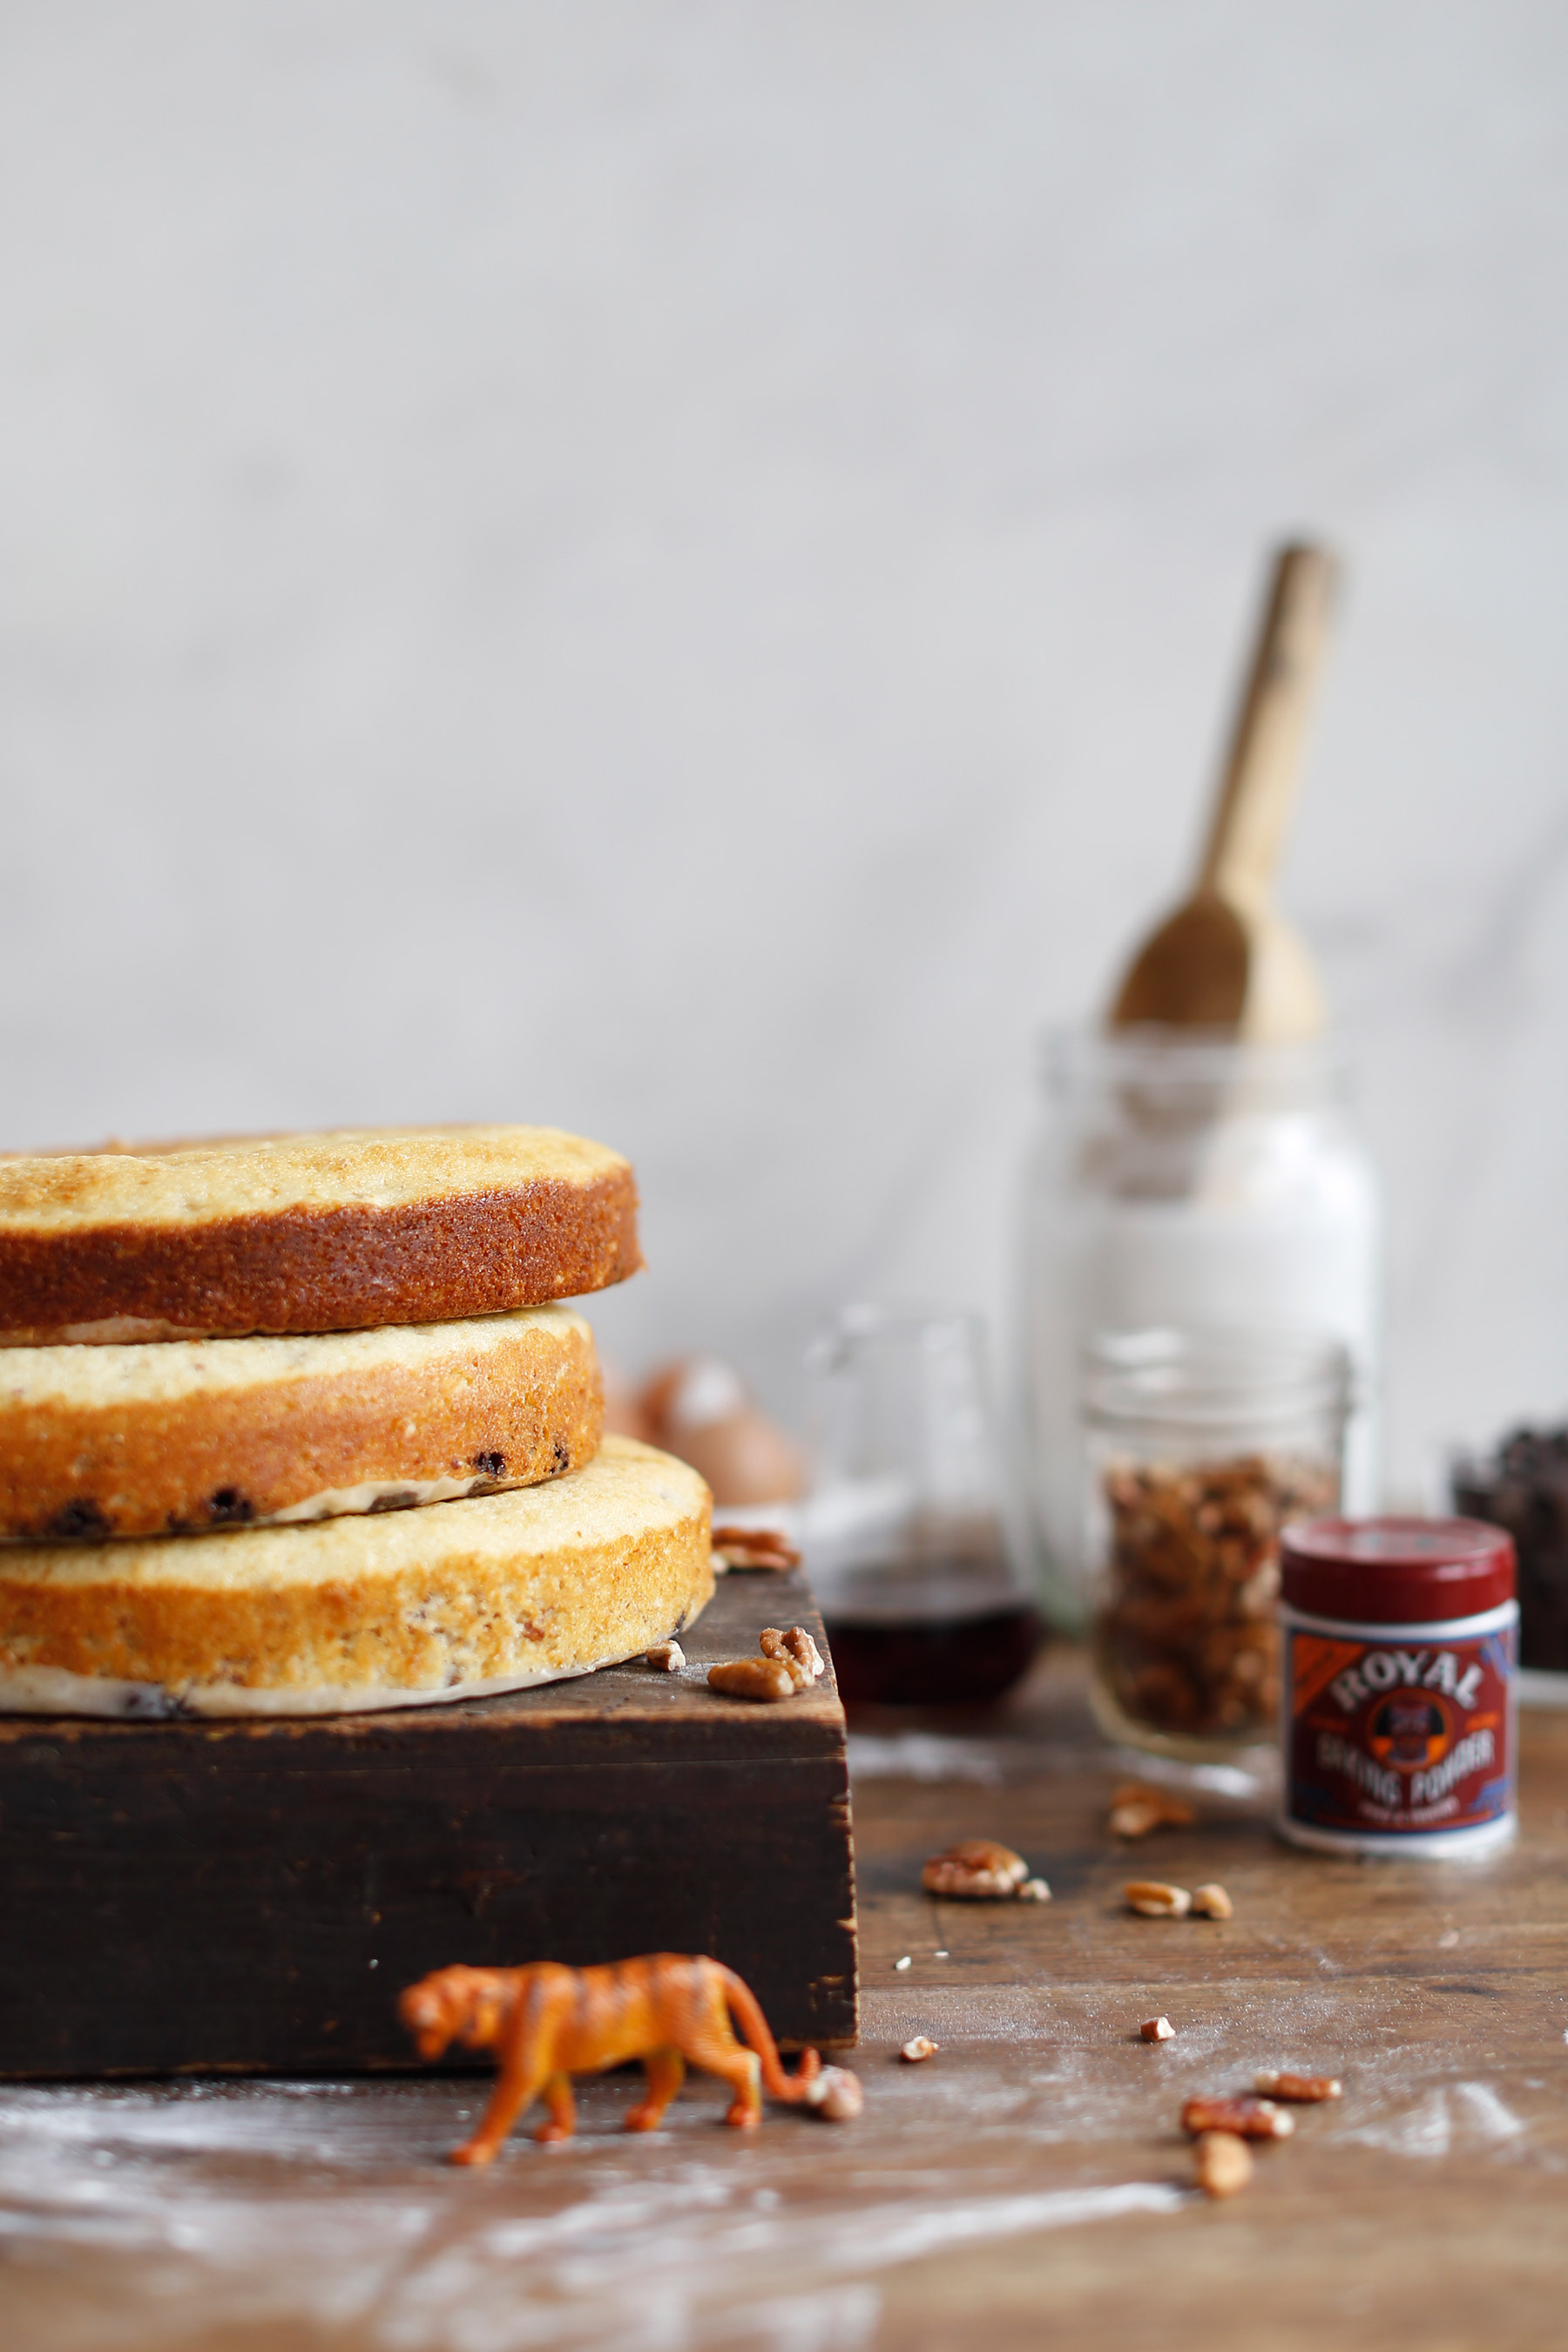 Pecan-Nut,-Chocolate-and-Maple-Syrup-Layer-Cake-6